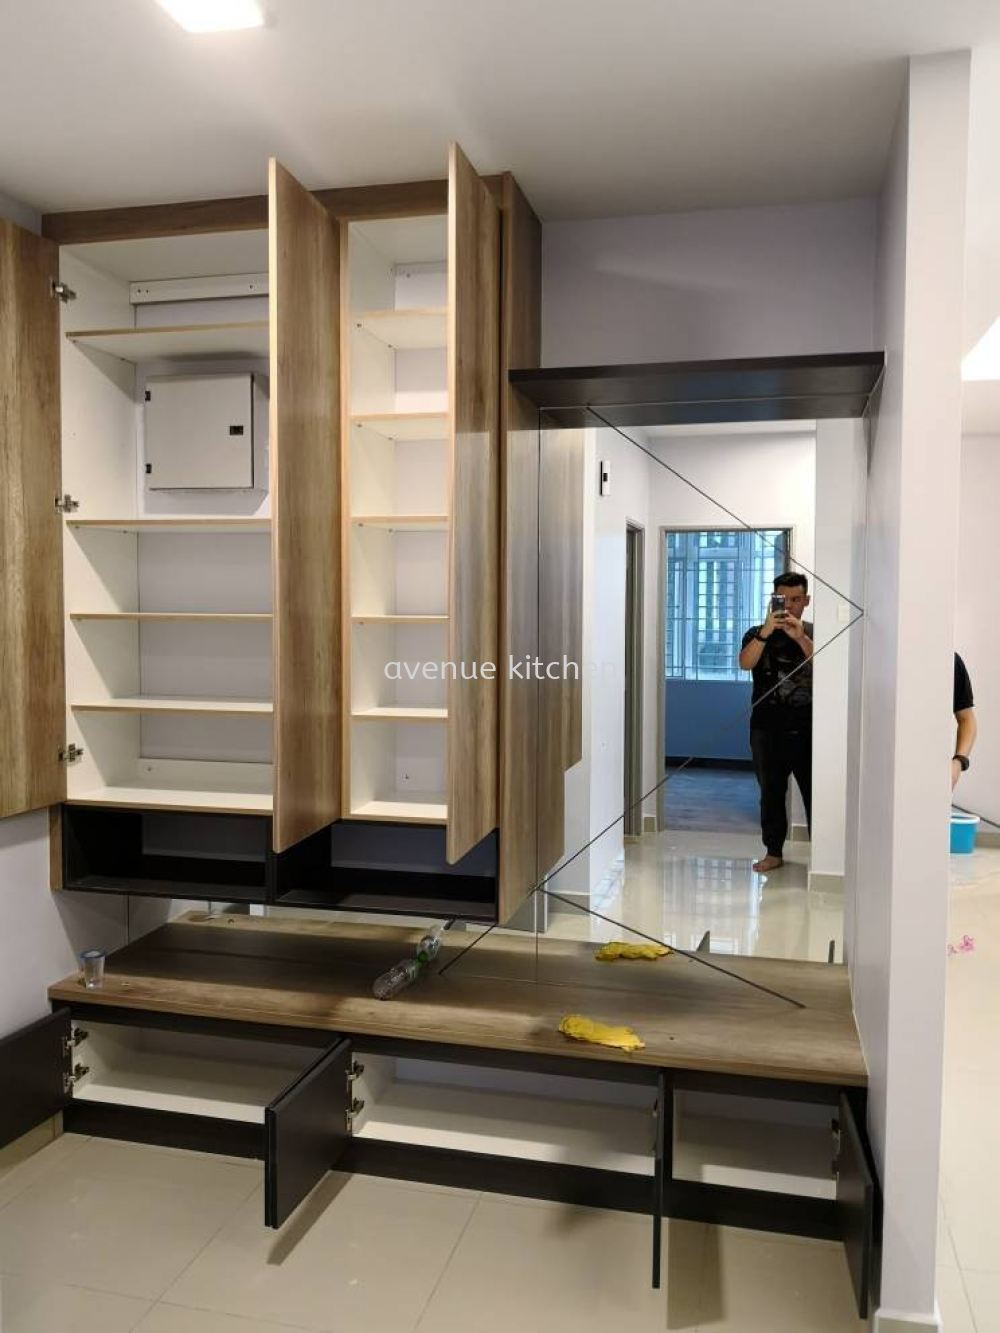 DWIPUTRA shoe cabinet Supplier, Supply, Design, Services  ~ Avenue Kitchen Cabinet